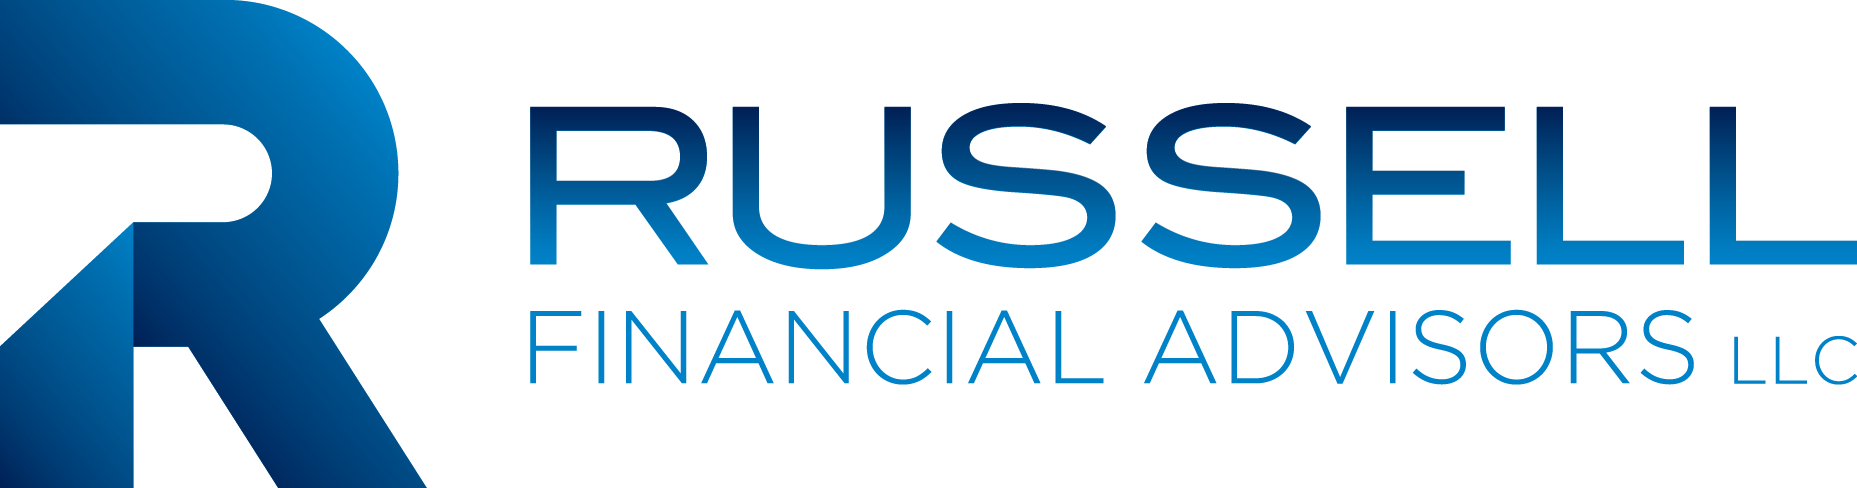 Russell Financial Advisors